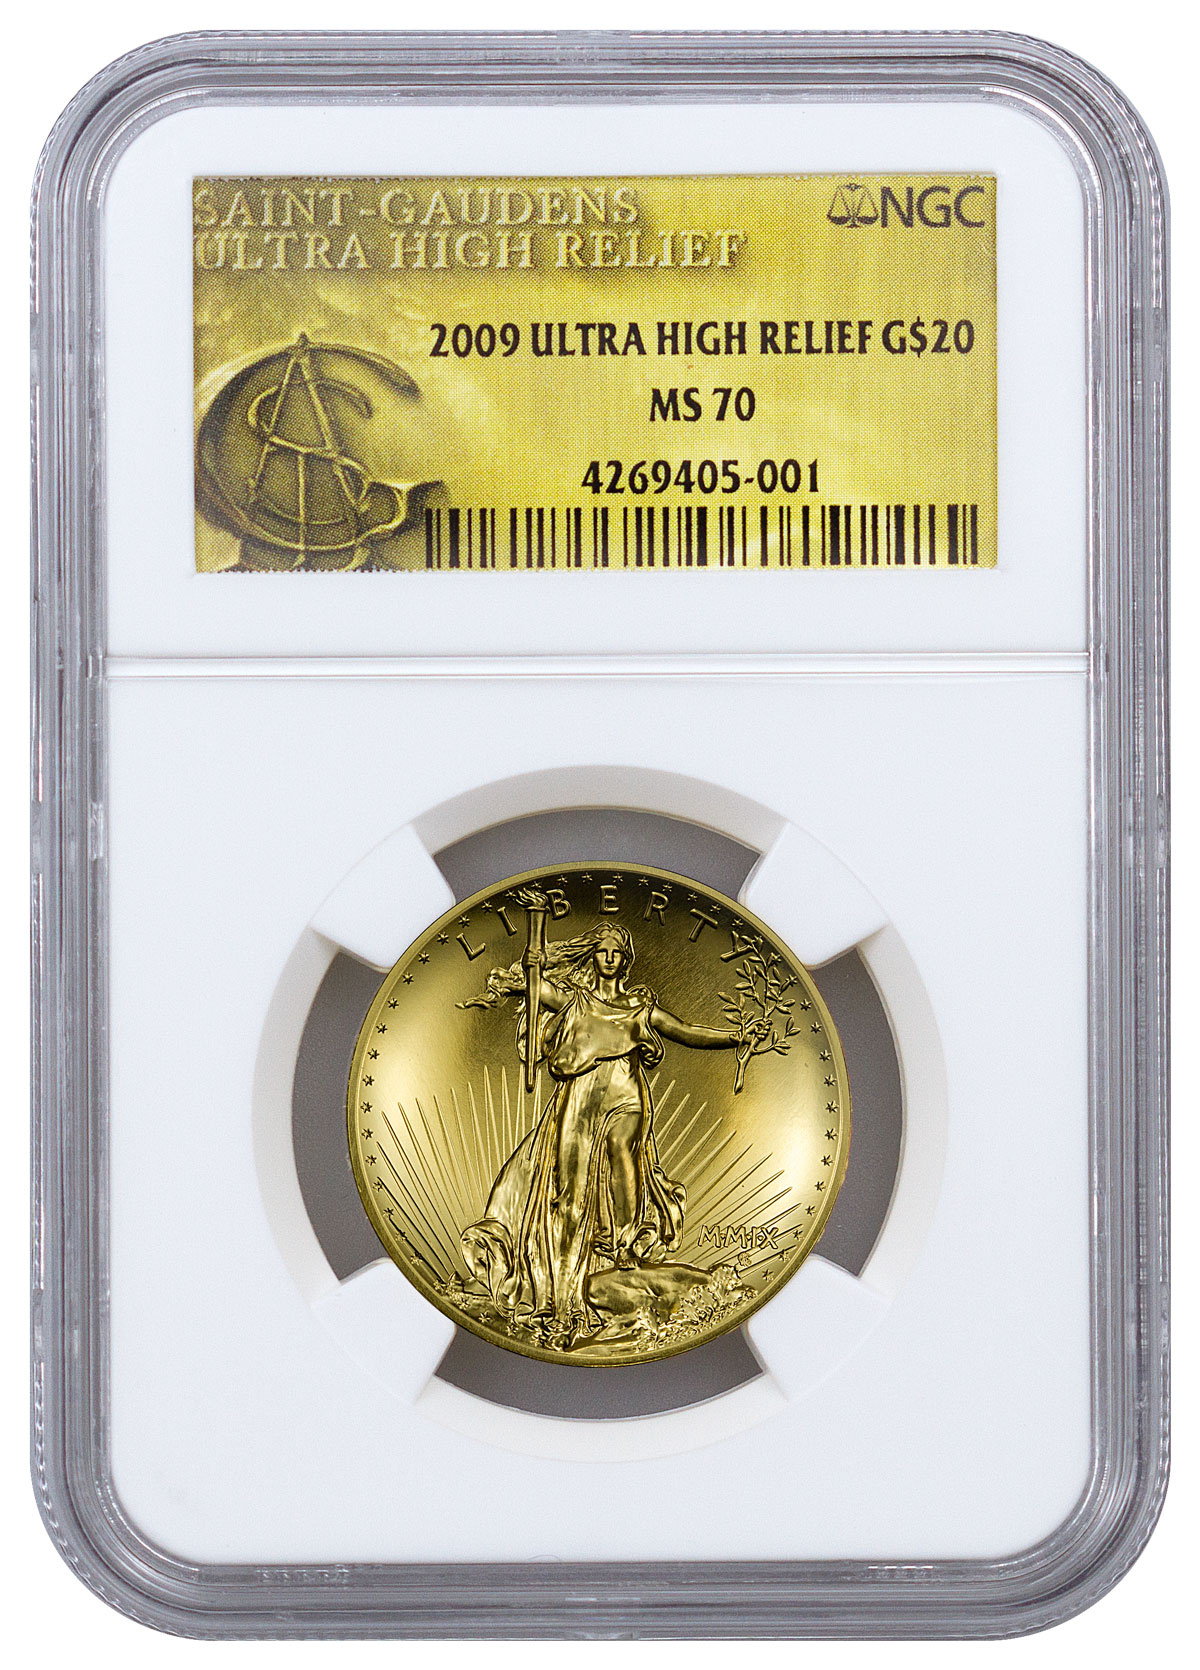 2009 Ultra High Relief Gold Saint-Gaudens Double Eagle $20 NGC MS70